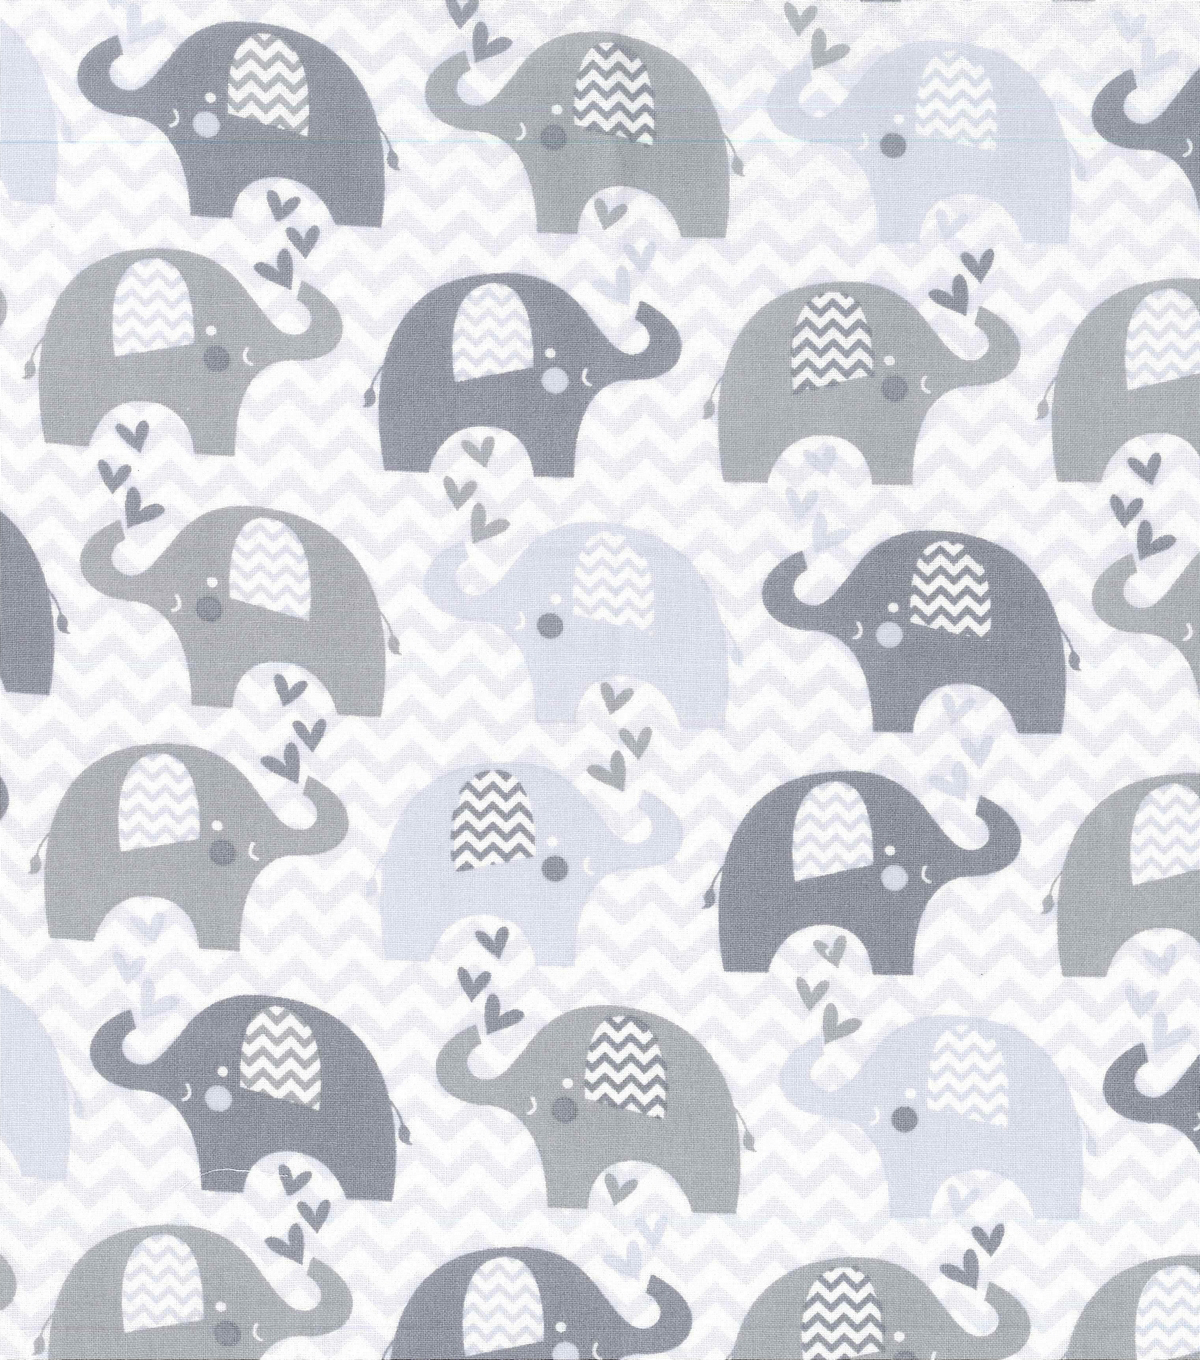 Nursery Cotton Fabric Grey Dream Chevron Elephant